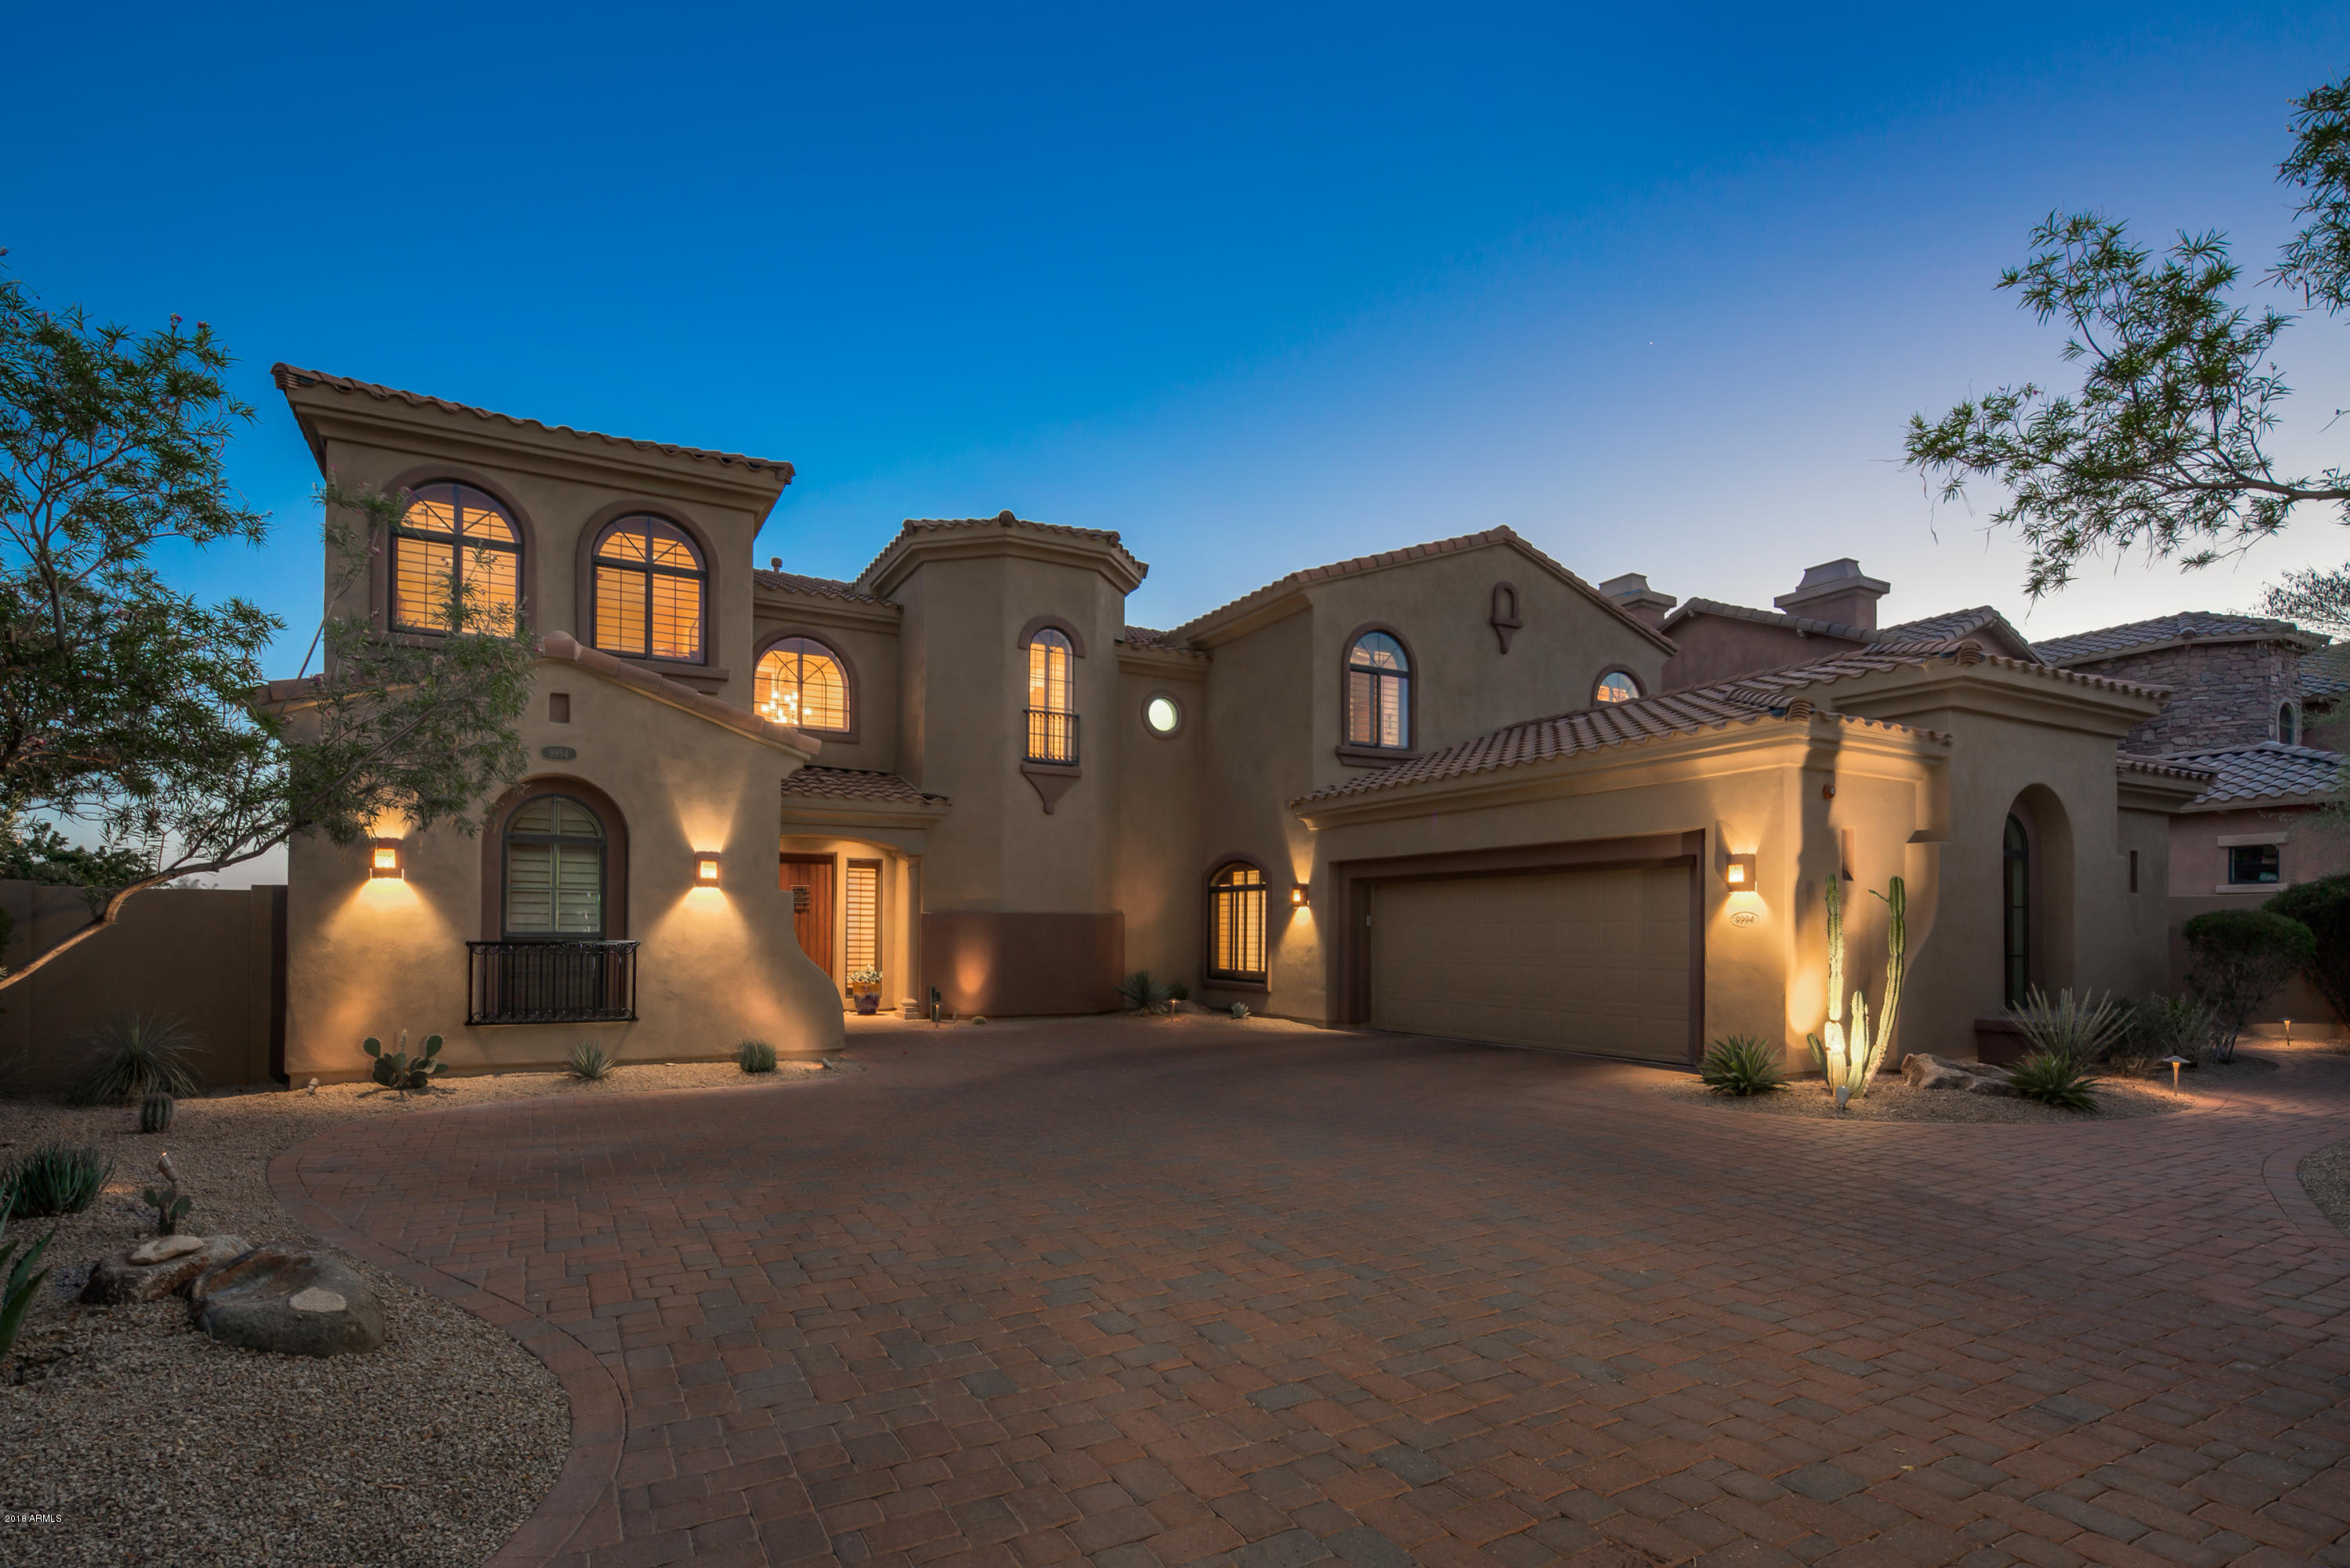 Photo of 9994 E RIDGERUNNER Drive, Scottsdale, AZ 85255